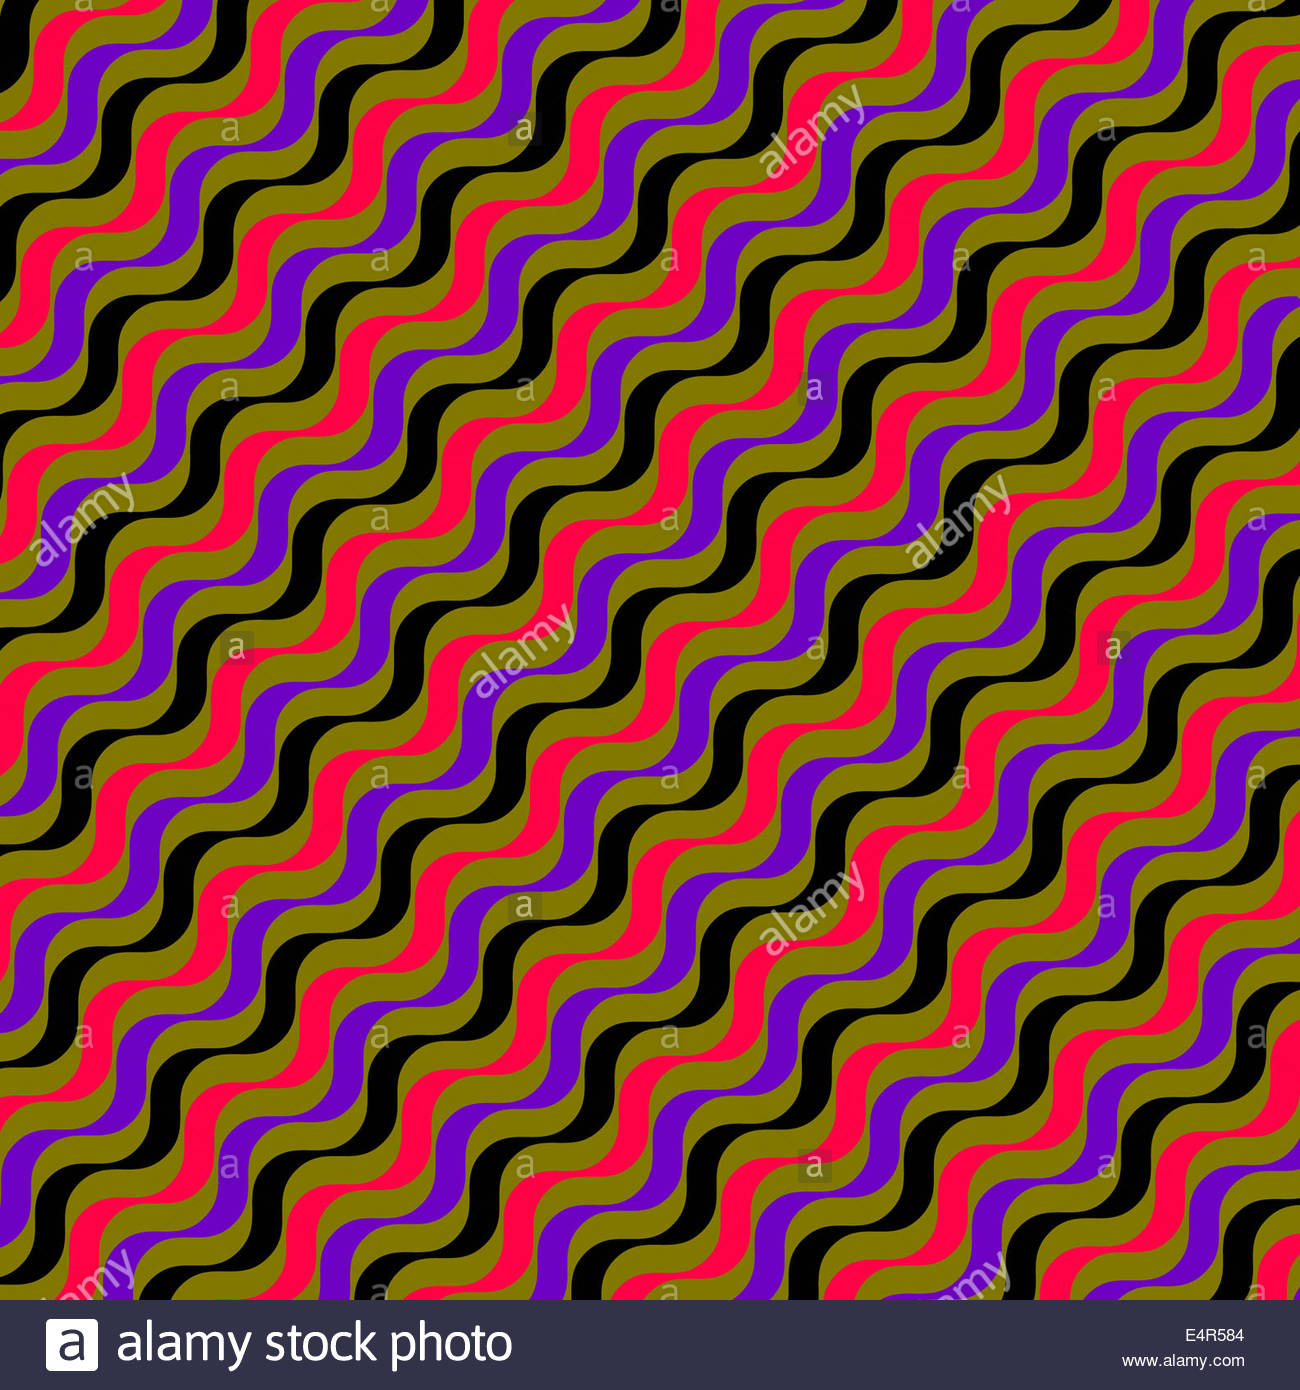 Abstract backgrounds pattern of repeating wavy lines - Stock Image